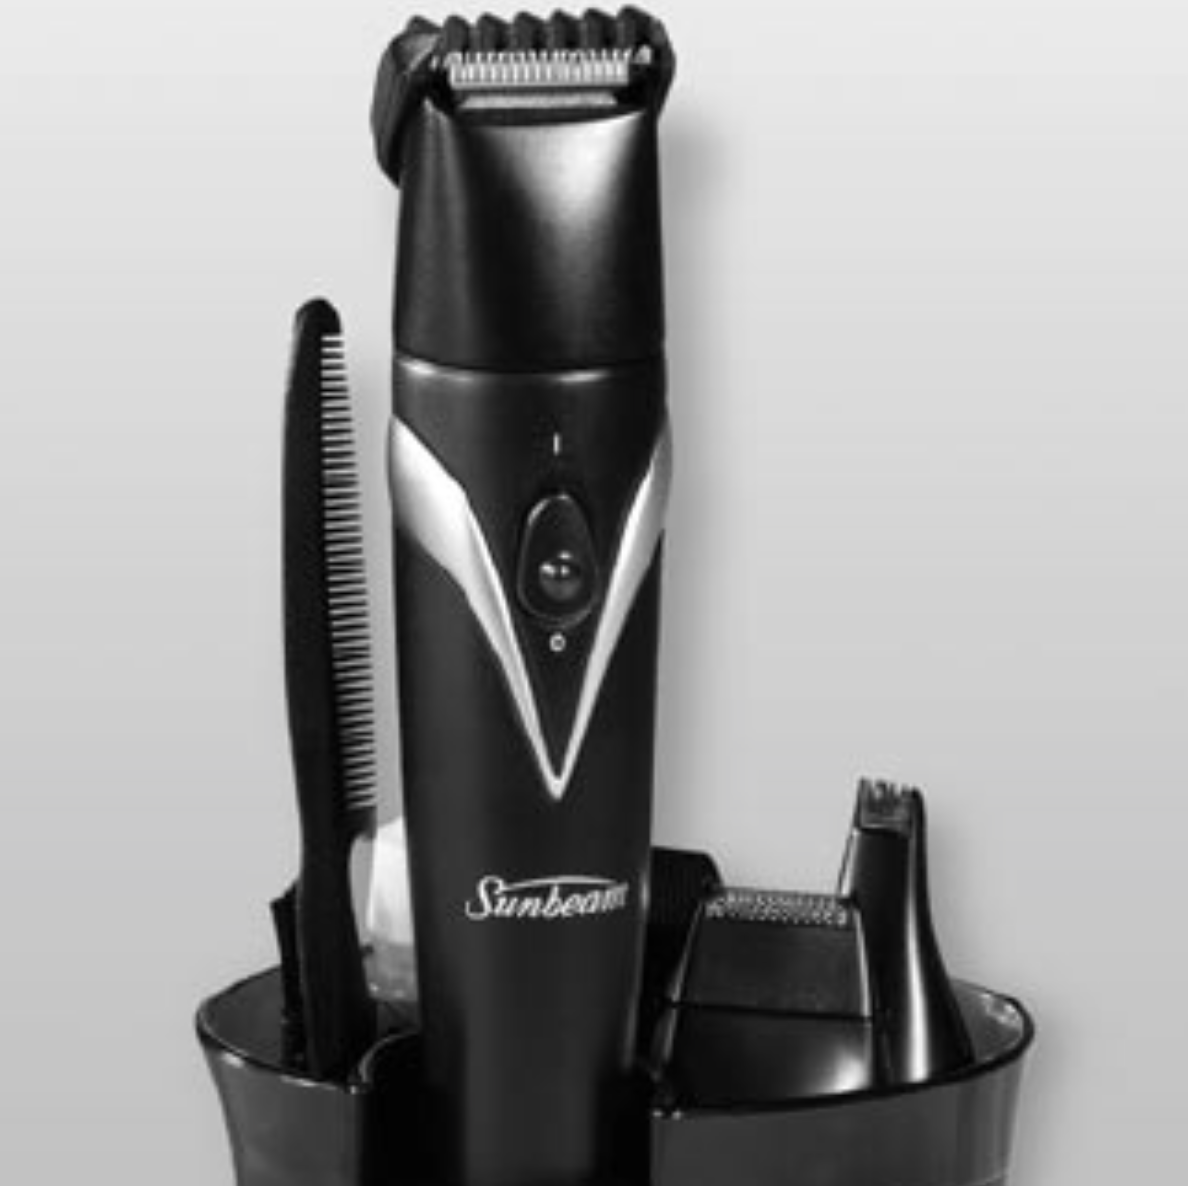 Sunbeam MG 6500 Beard Trimmer